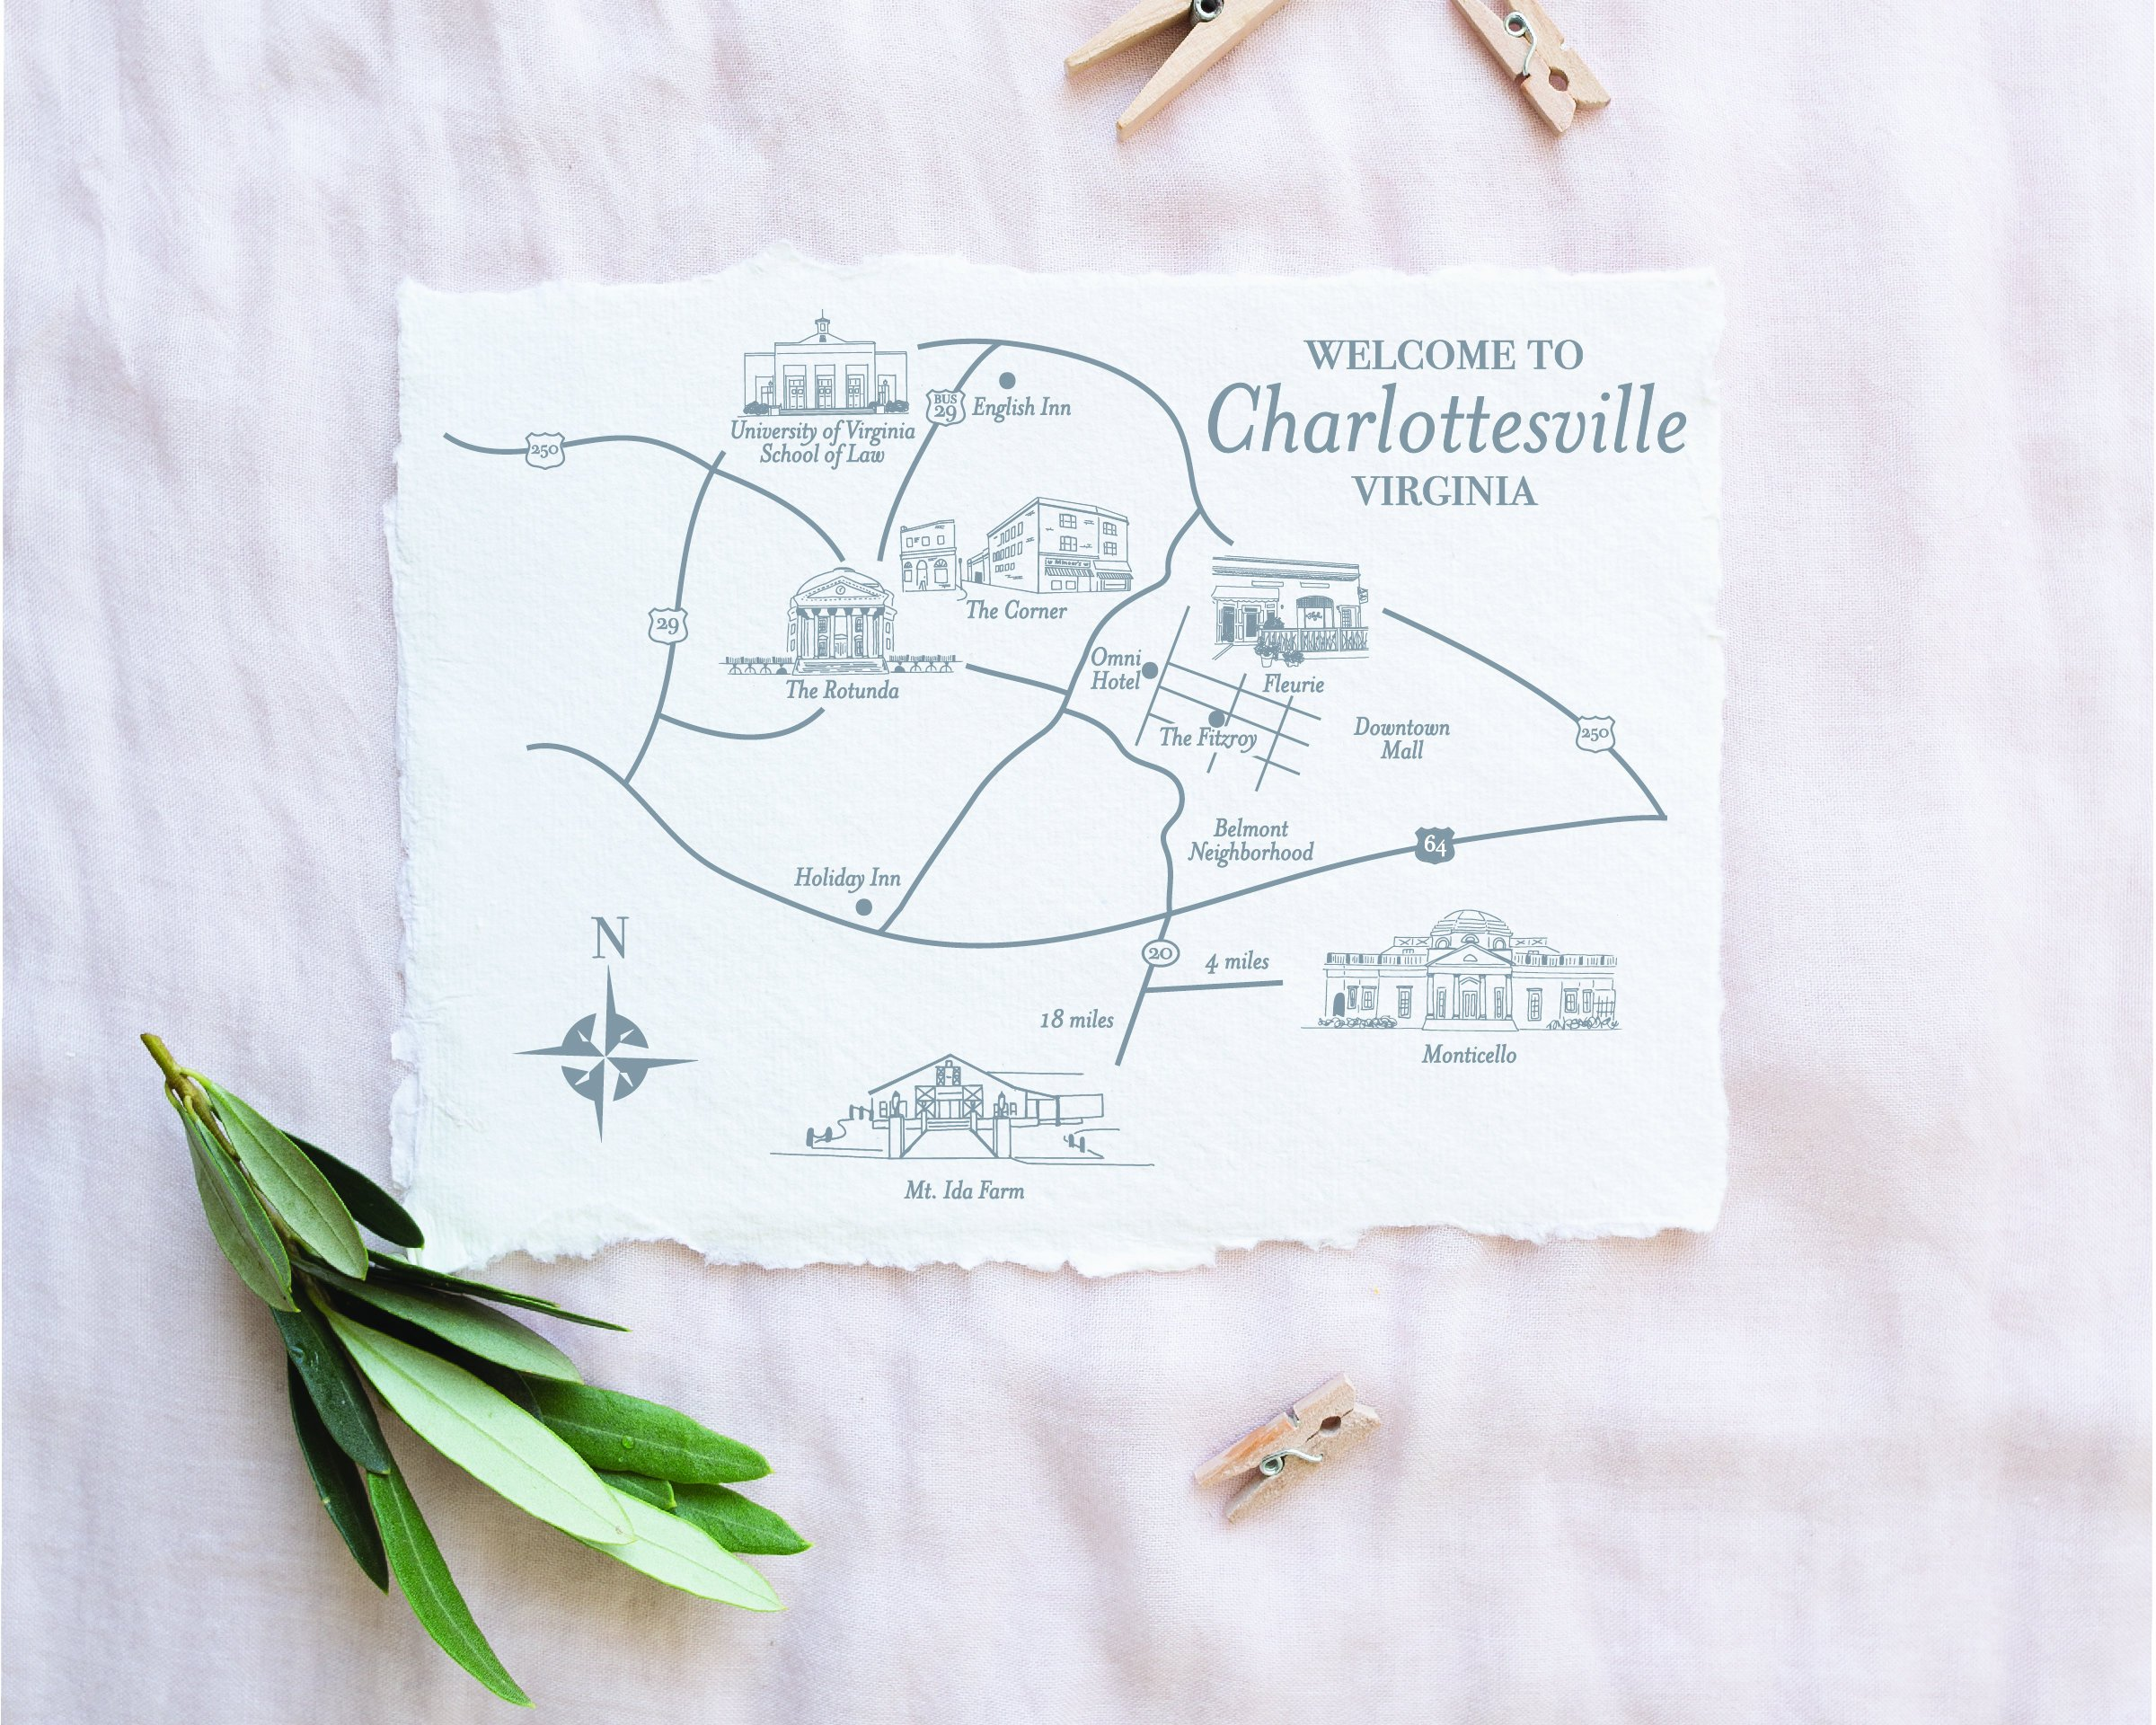 Charlottesville, Virginia Welcome Bag Wedding Guest Map by Southpaw and Co.